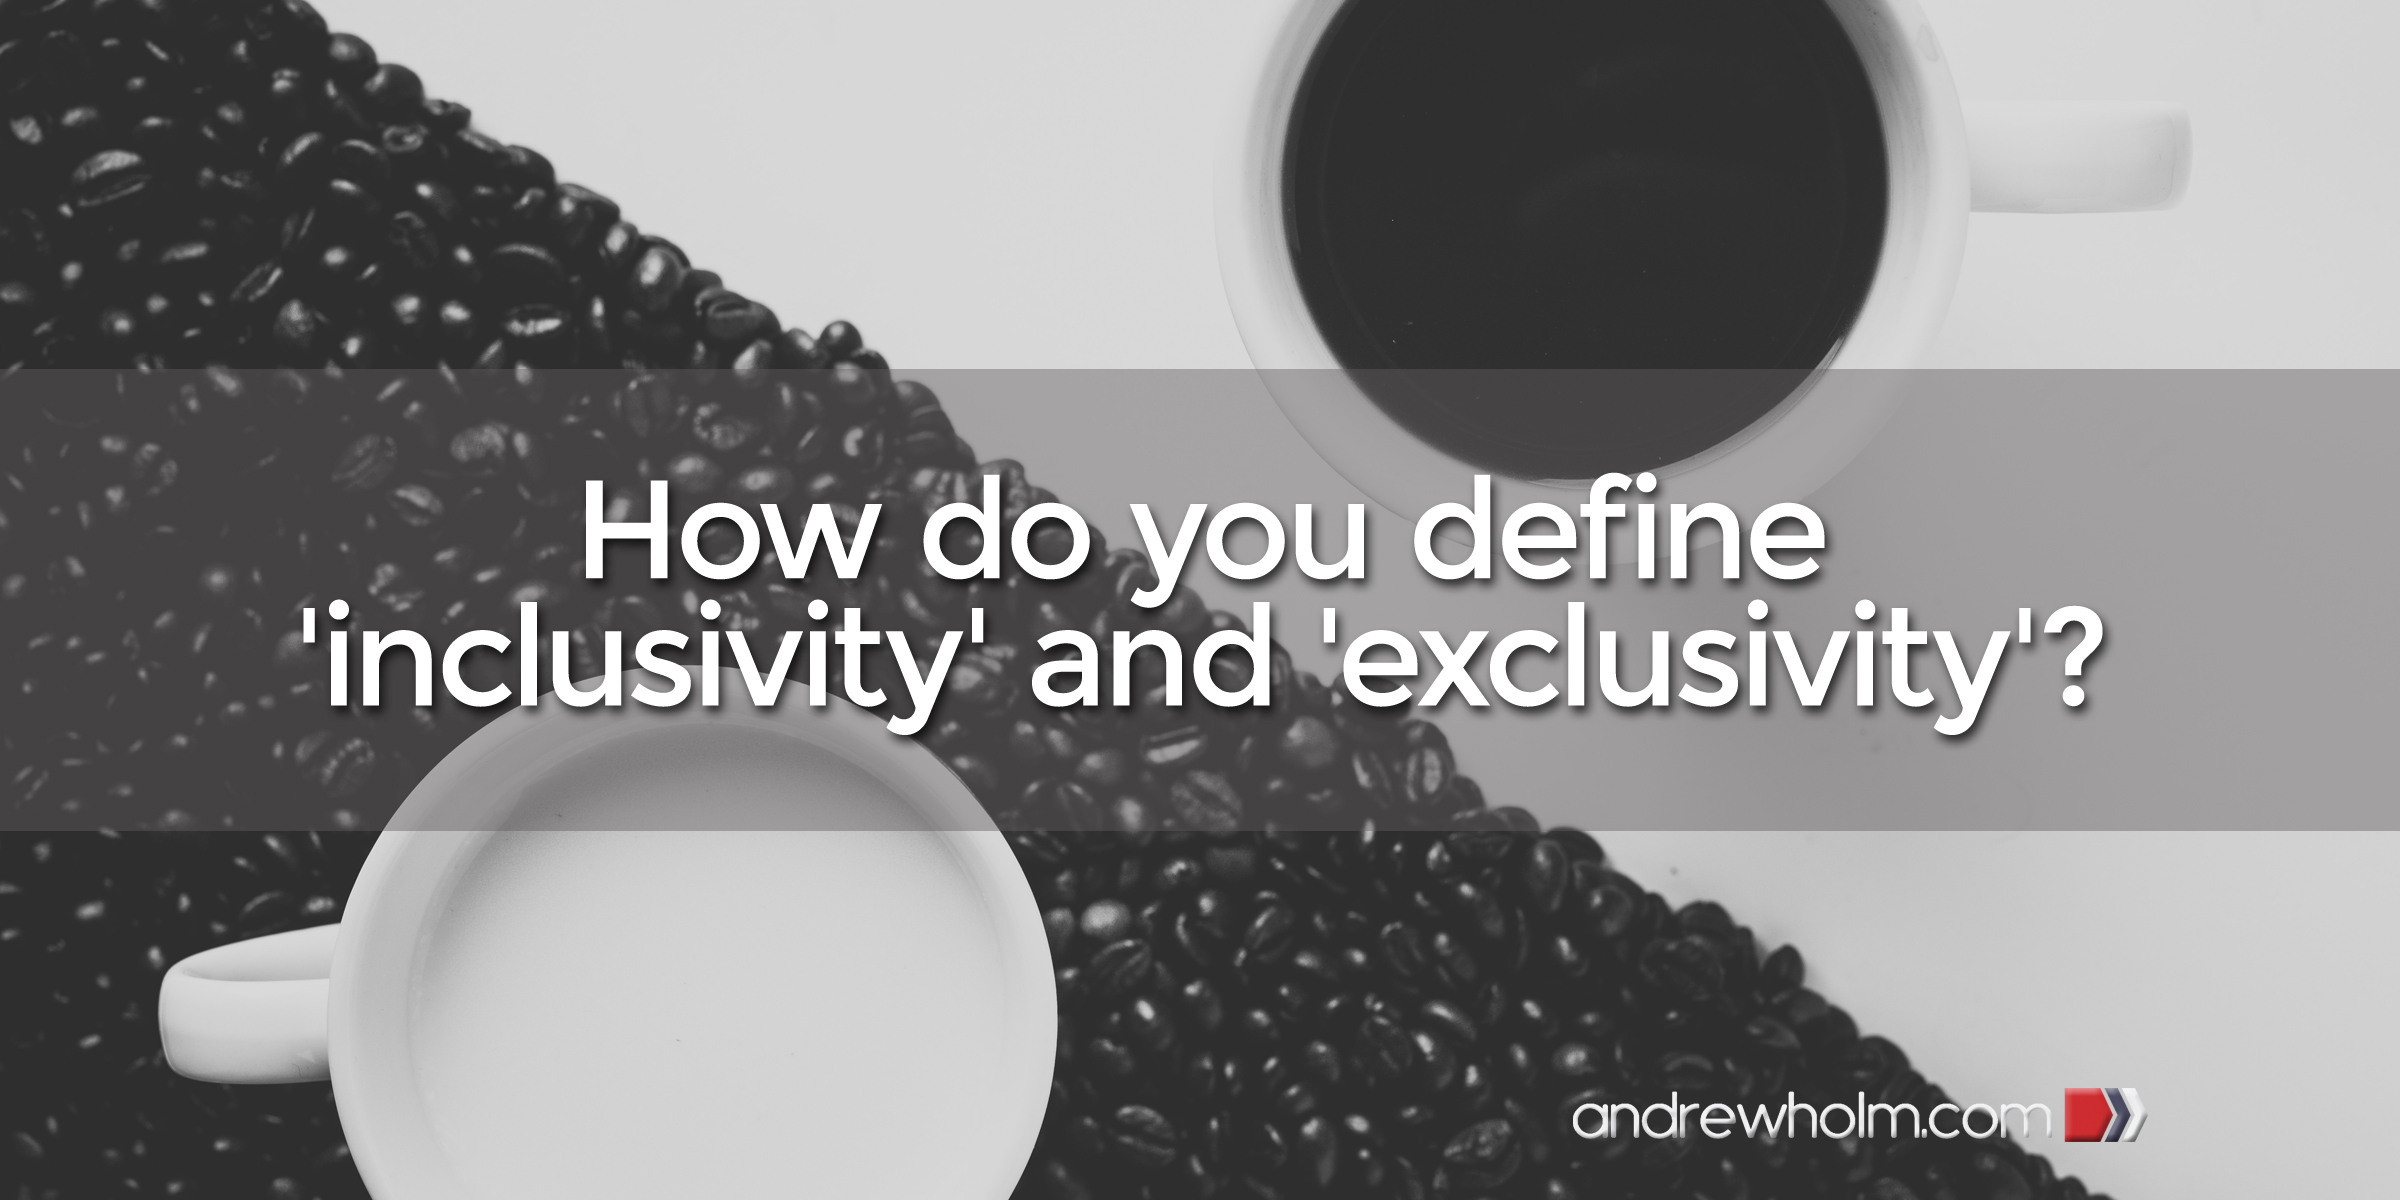 How do you define 'inclusivity' and 'exclusivity'?